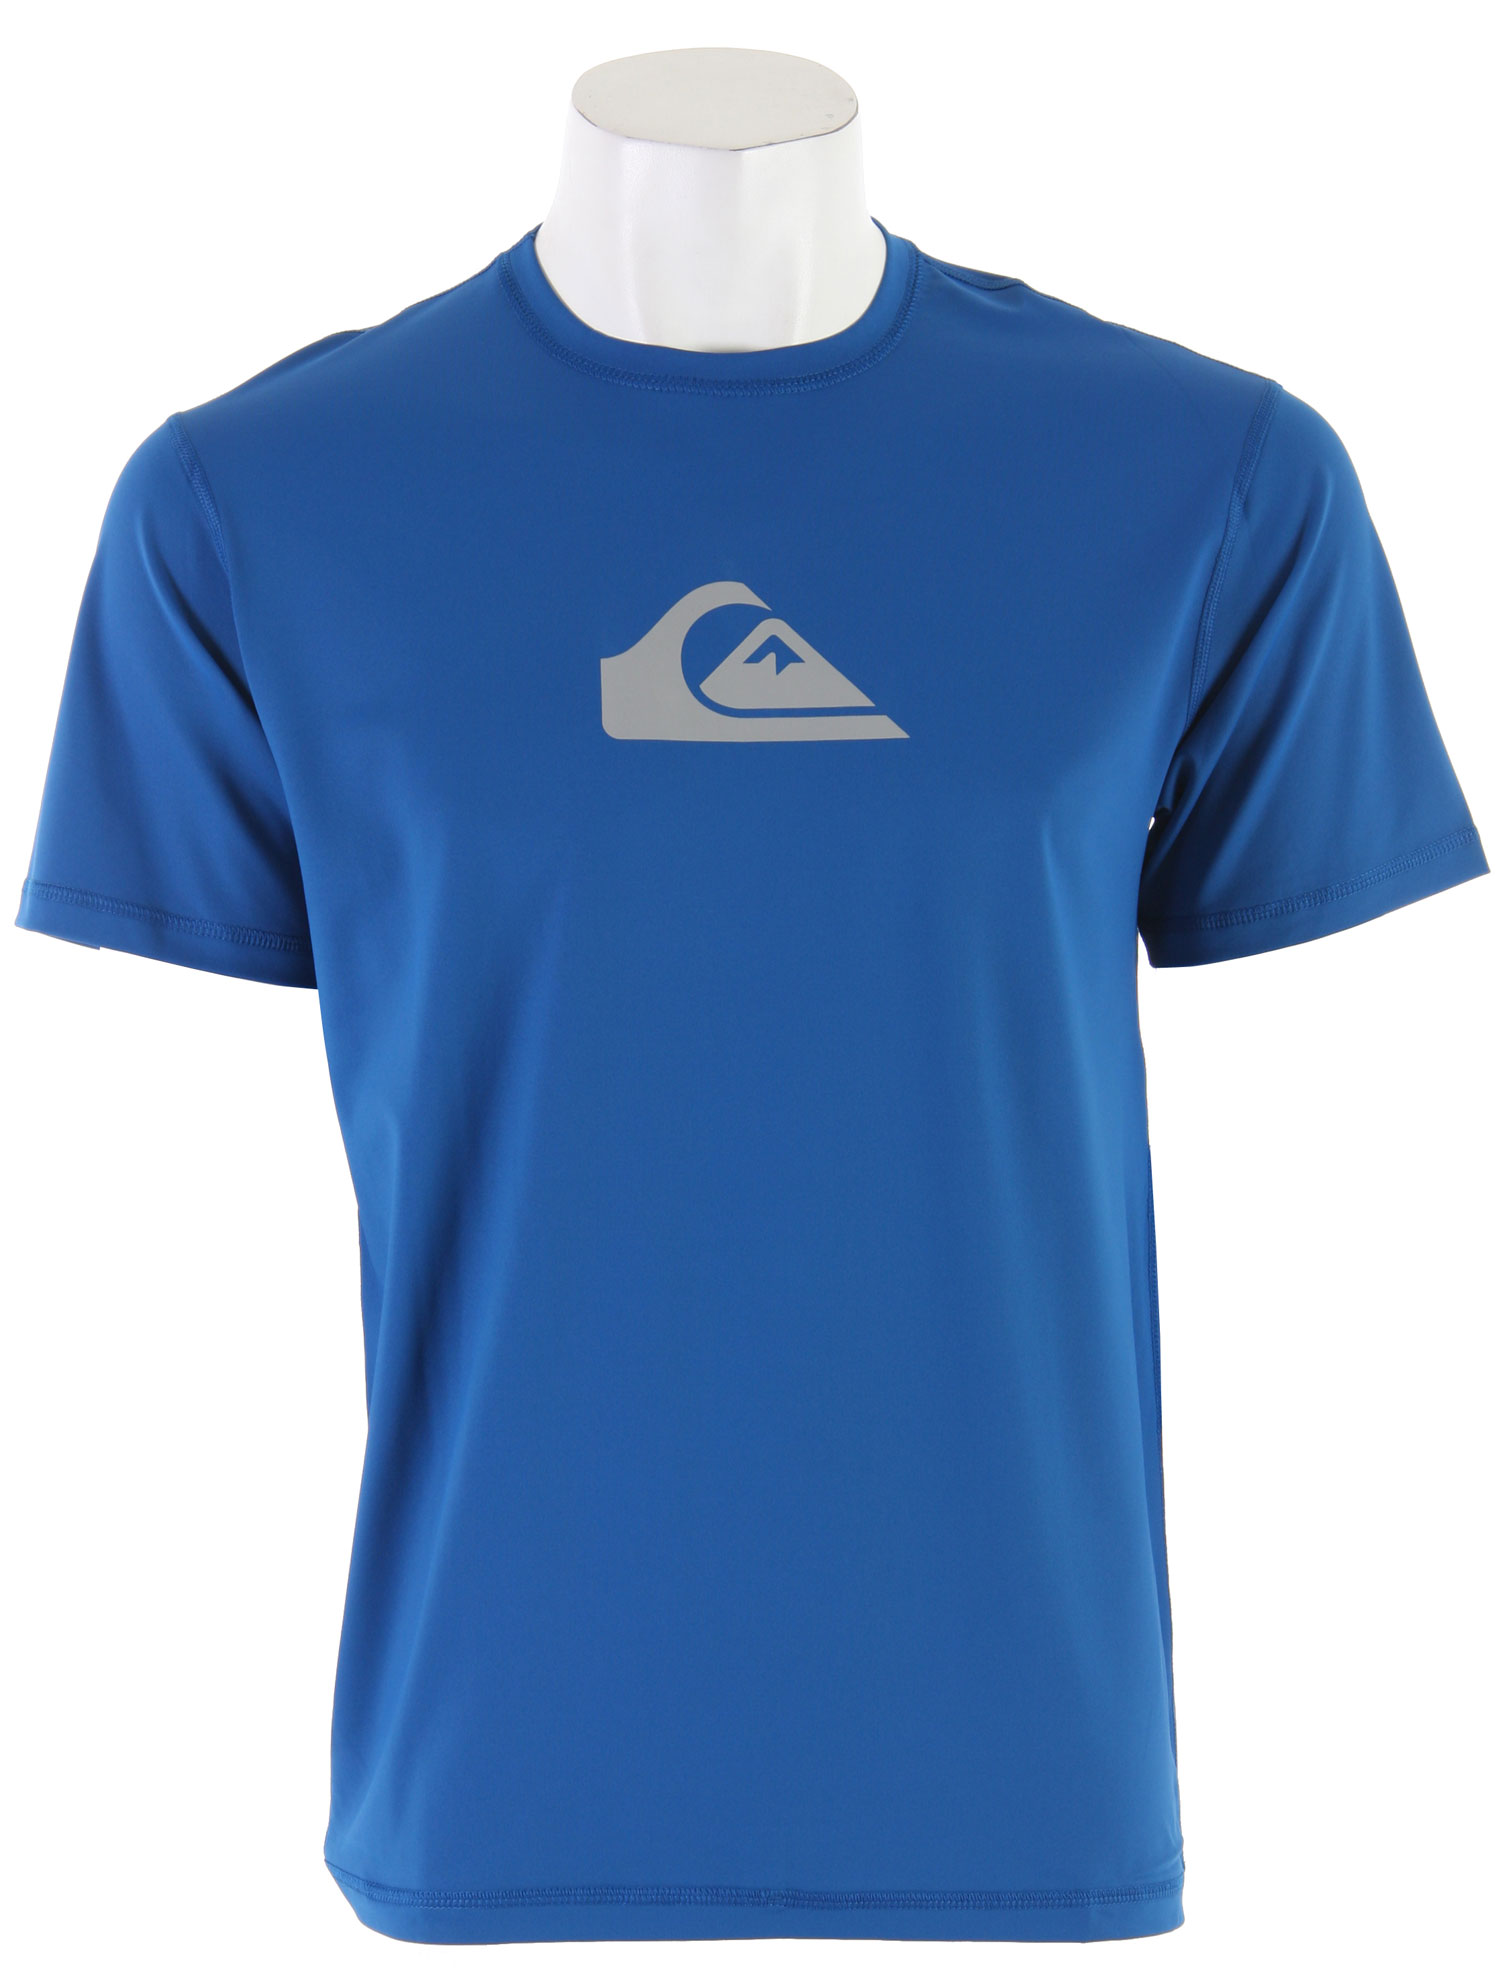 Surf The season is here to rock out T-shirts at the beach or the pool. Don't rock out with just any shirt, but the Quiksilver Solid Streak S/S Surf T-Shirt Royal. Its simple design adds a modern touch to an ordinary T-shirt. The Quiksilver logo stands out front and center on a loosely fitted crew neck shirt. Made with flatlock stitches, this is perfect for a day out in the sun.Key Features of the Quiksilver Solid Streak S/S Surf T-Shirt: 6.3 oz UPF 50+ surf shirt Short sleeve loose fit style with crew neck design Flatlock stitched Boardshort loop fastener - $22.95